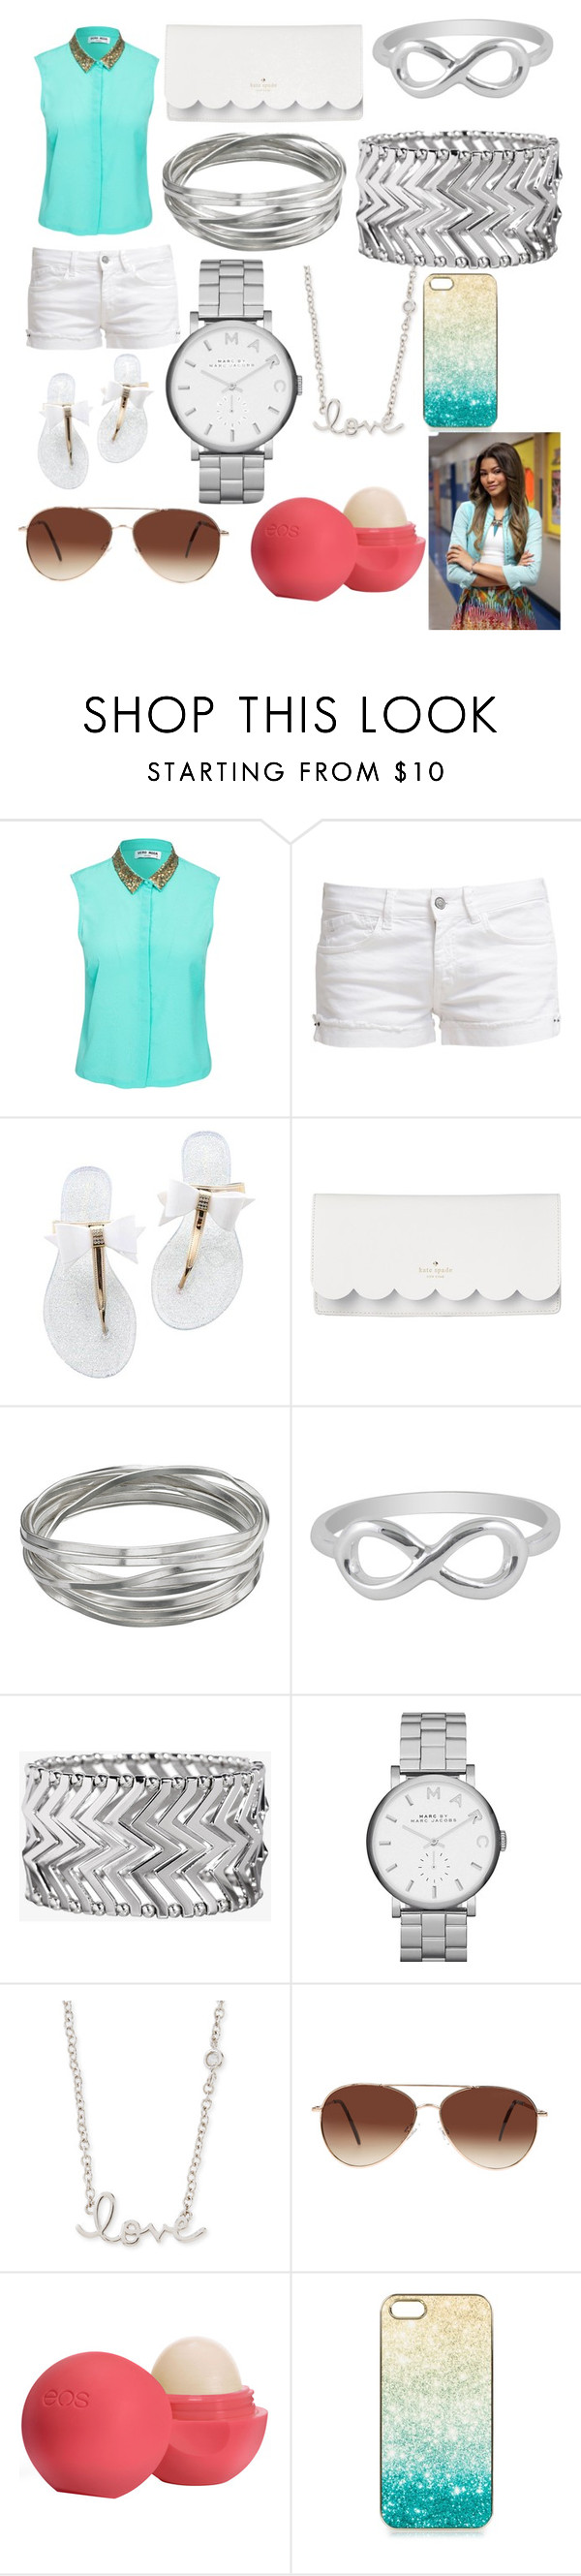 """""""CUTE OR NAW??!!"""" by sanyhacobb123 ❤ liked on Polyvore featuring Vero Moda, Le Temps Des Cerises, Kate Spade, Whistles, Jewel Exclusive, Express, Marc by Marc Jacobs, Sydney Evan, Eloquii and Eos"""